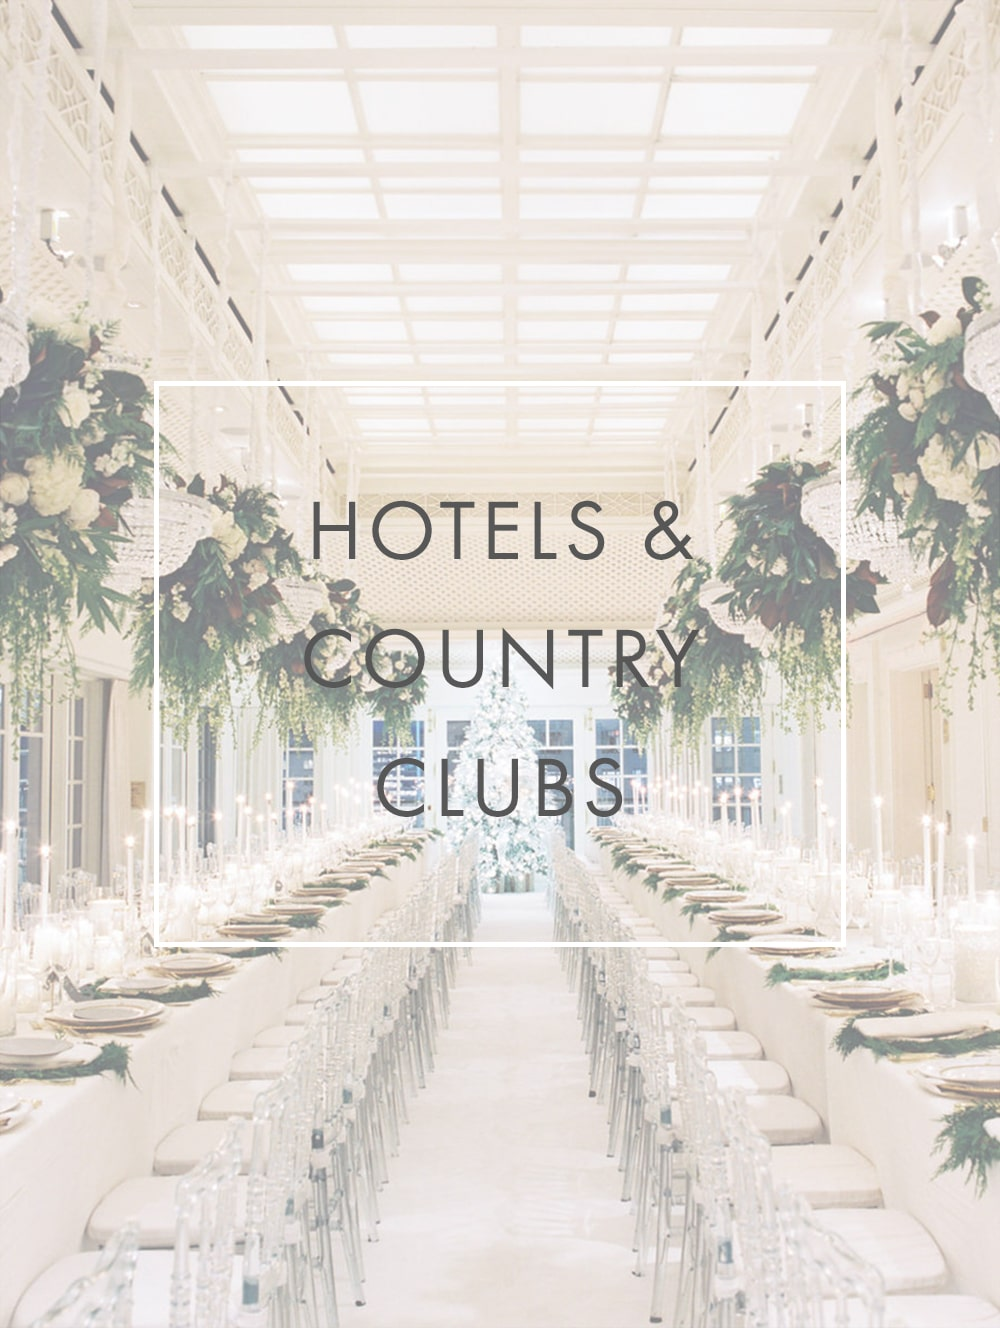 Hotels_Country_Clubs-mobile-min.jpg